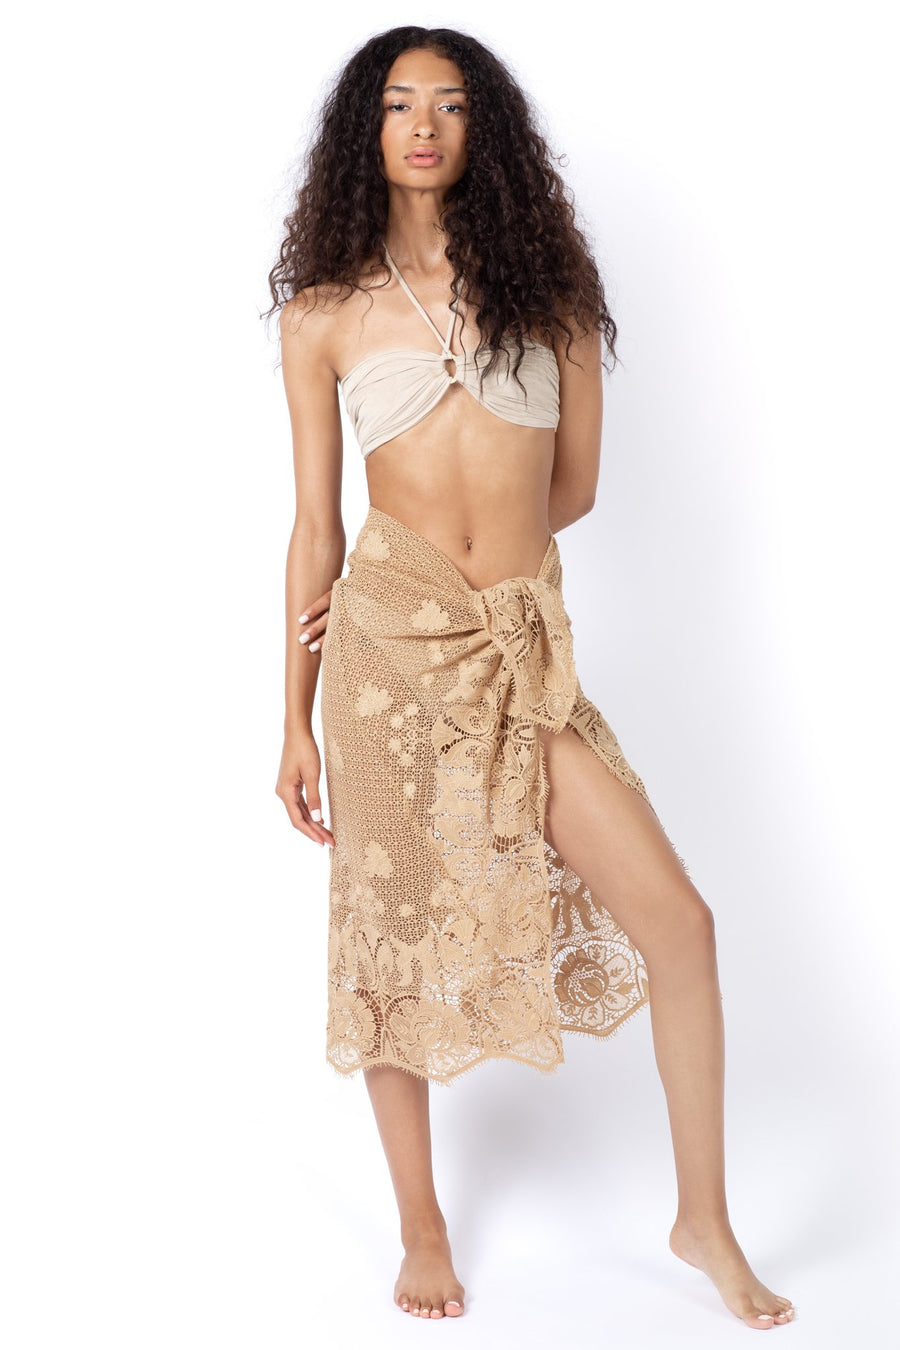 This is a photo of a woman wearing a beige colored, halter swim suit top with a lace scalloped, sheer pareo that is tied around her waist.